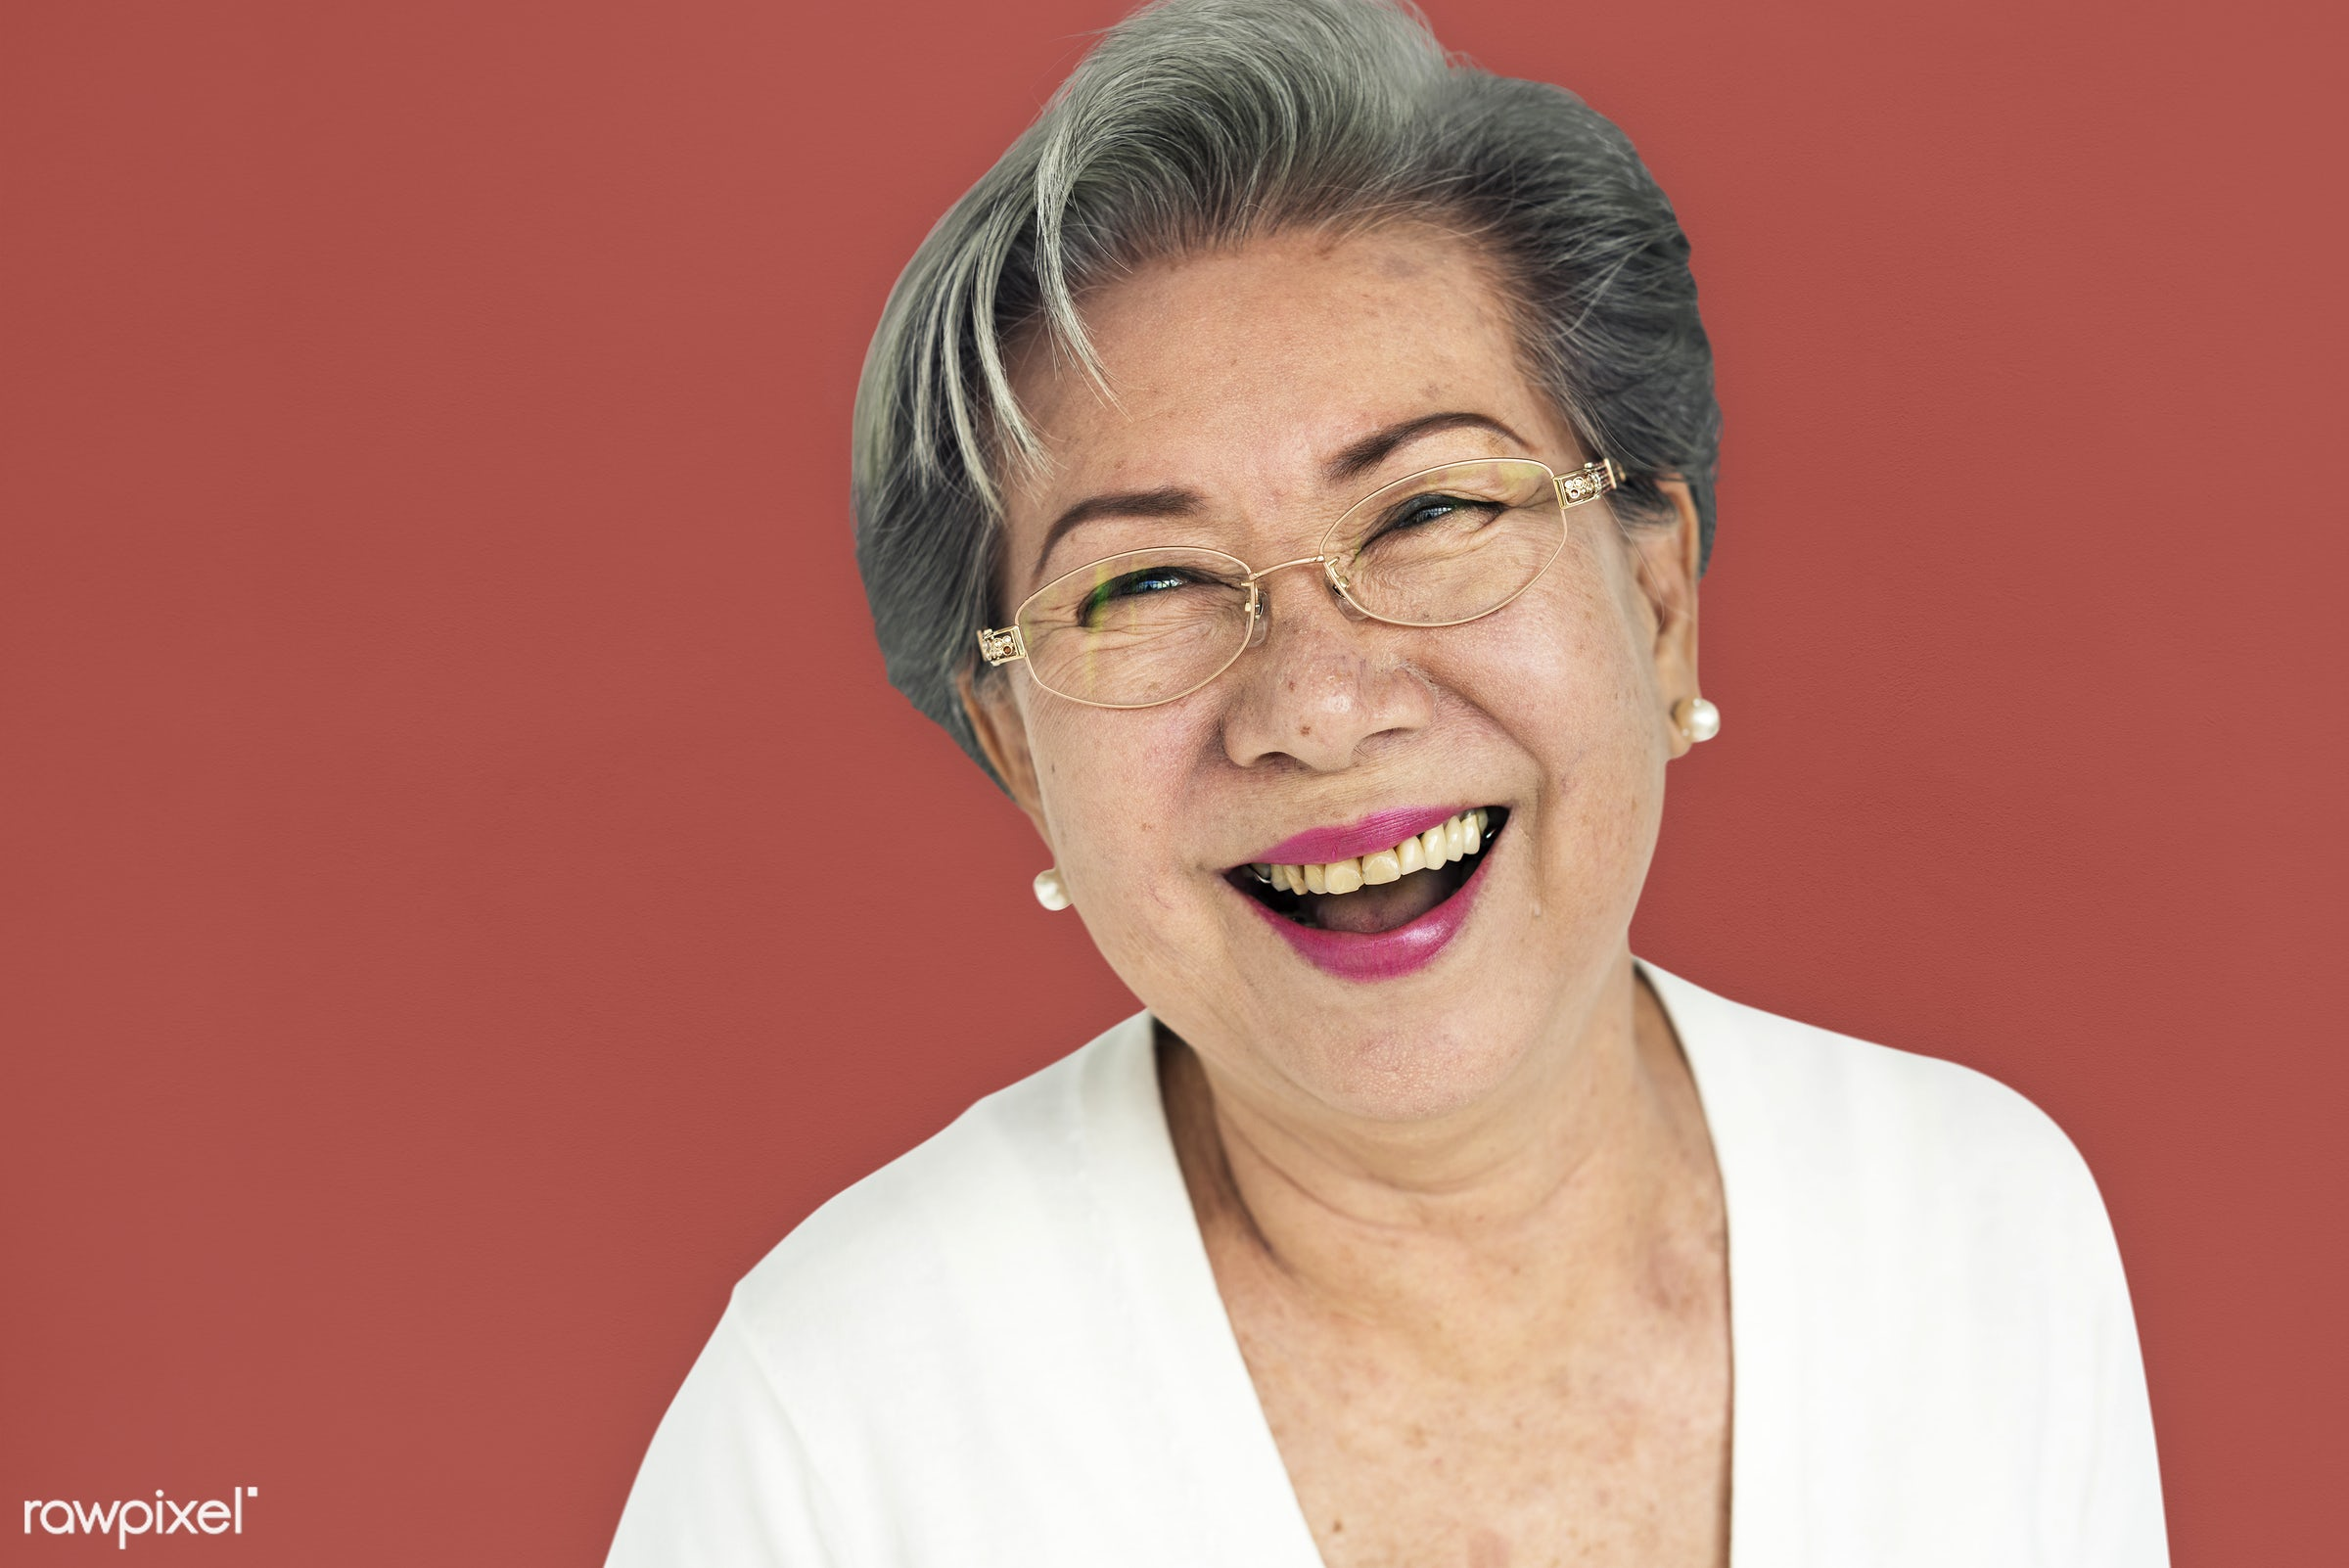 studio, expression, earth tone, person, people, asian, woman, cheerful, smiling, isolated, happiness, portrait, emotion,...